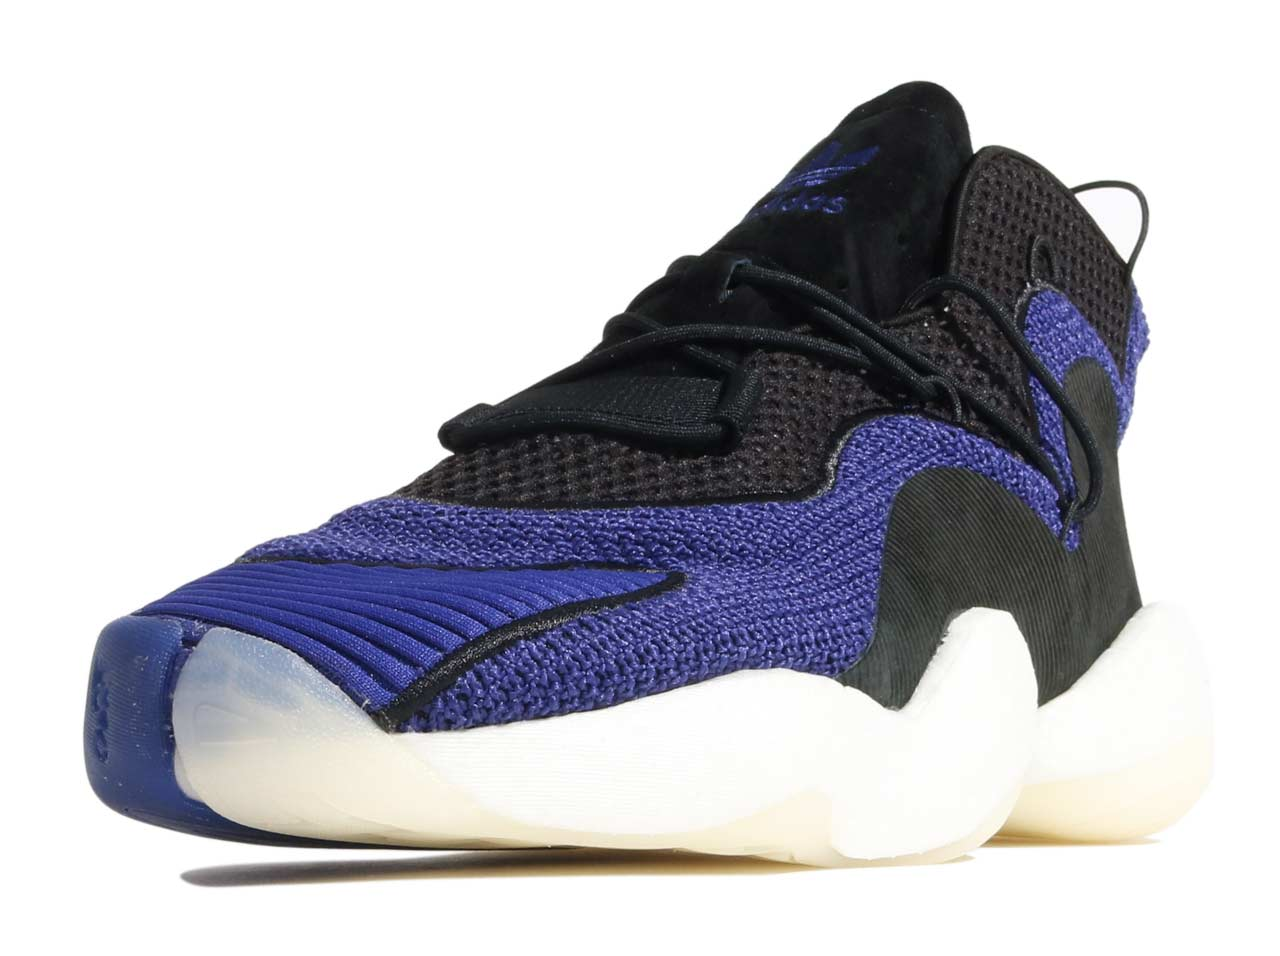 OUTLET特価 adidas Originals CRAZY BYW LVL I B37550アディダス クレイジー BN8Ovmwn0